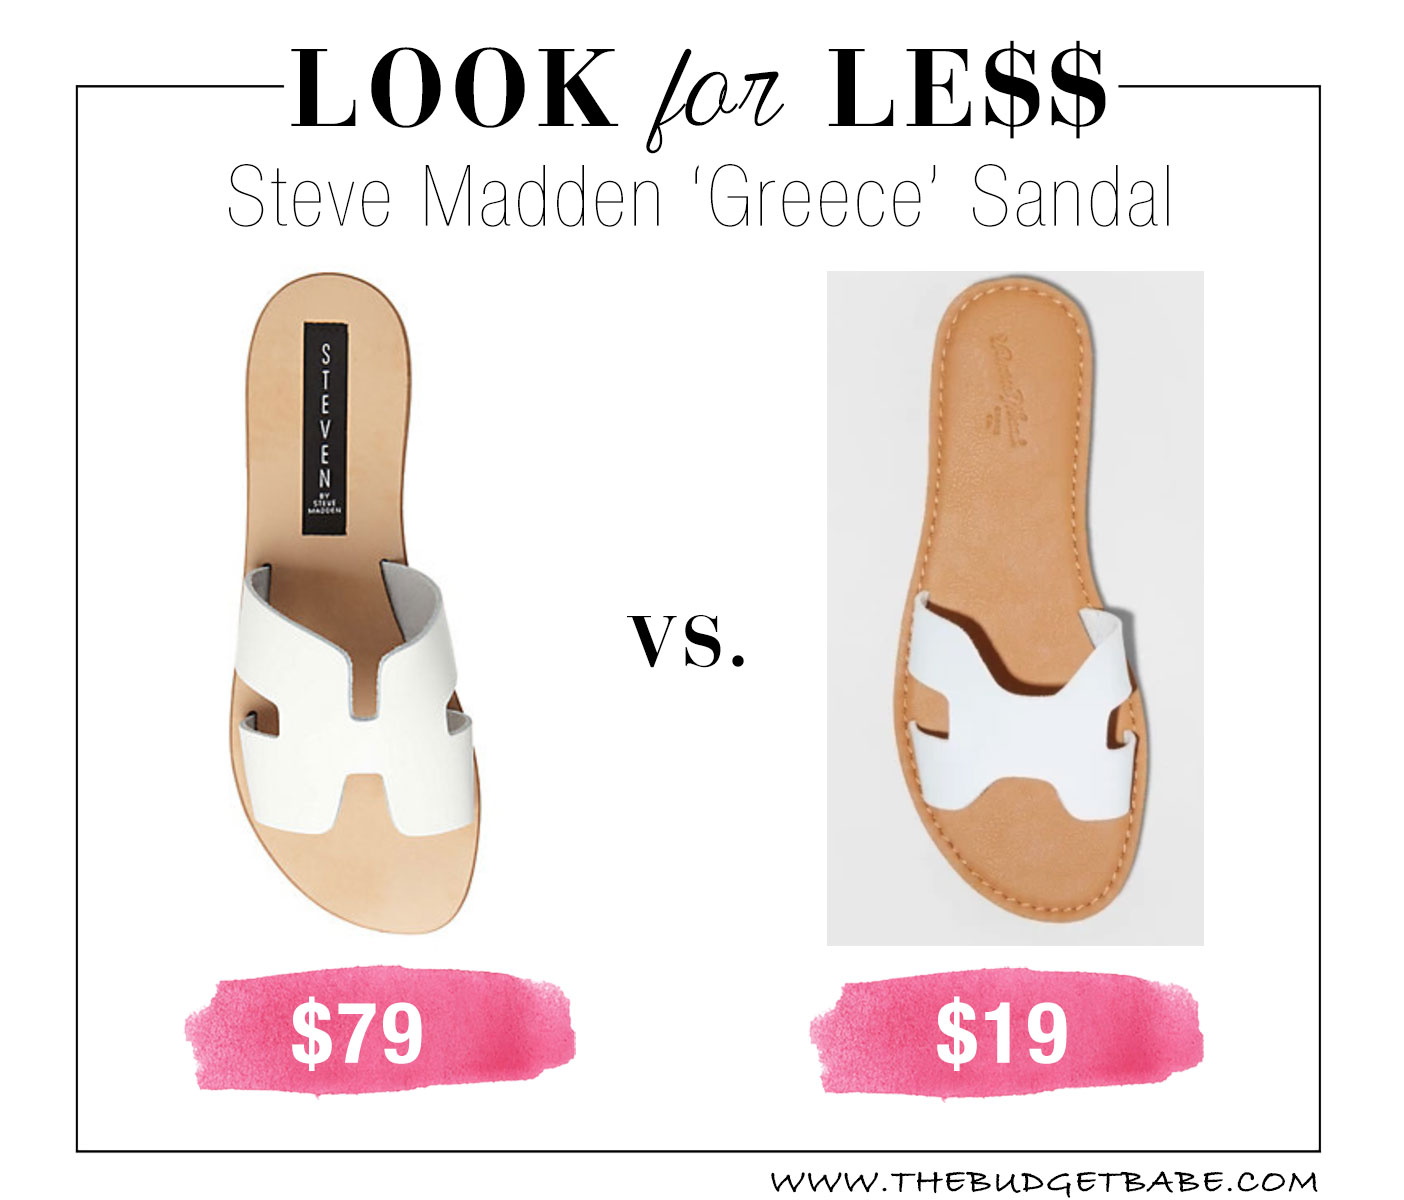 Steve Madden 'Greece' slide dupes at Target!